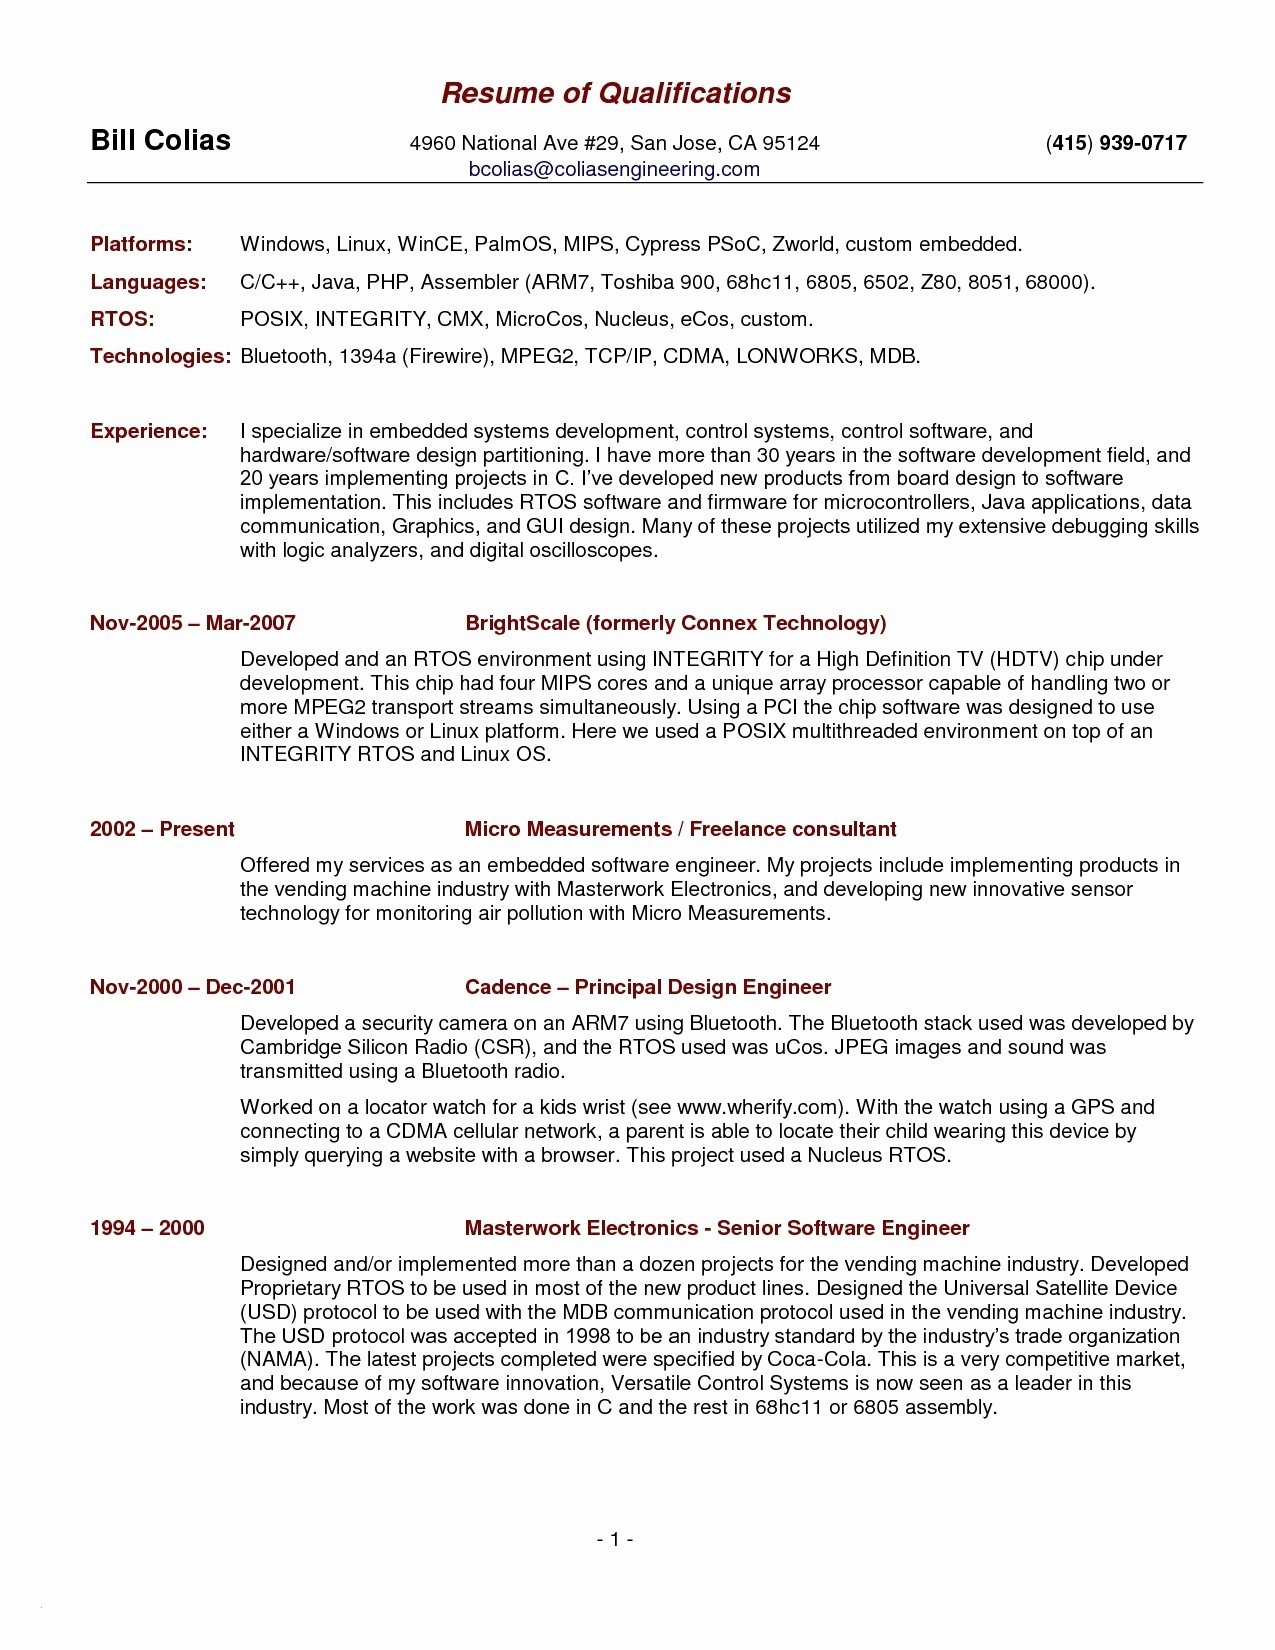 consulting resume template example-Resume Templates Pdf Free Inspirational Lovely Pr Resume Template Elegant Dictionary Template 0d Archives 8-m